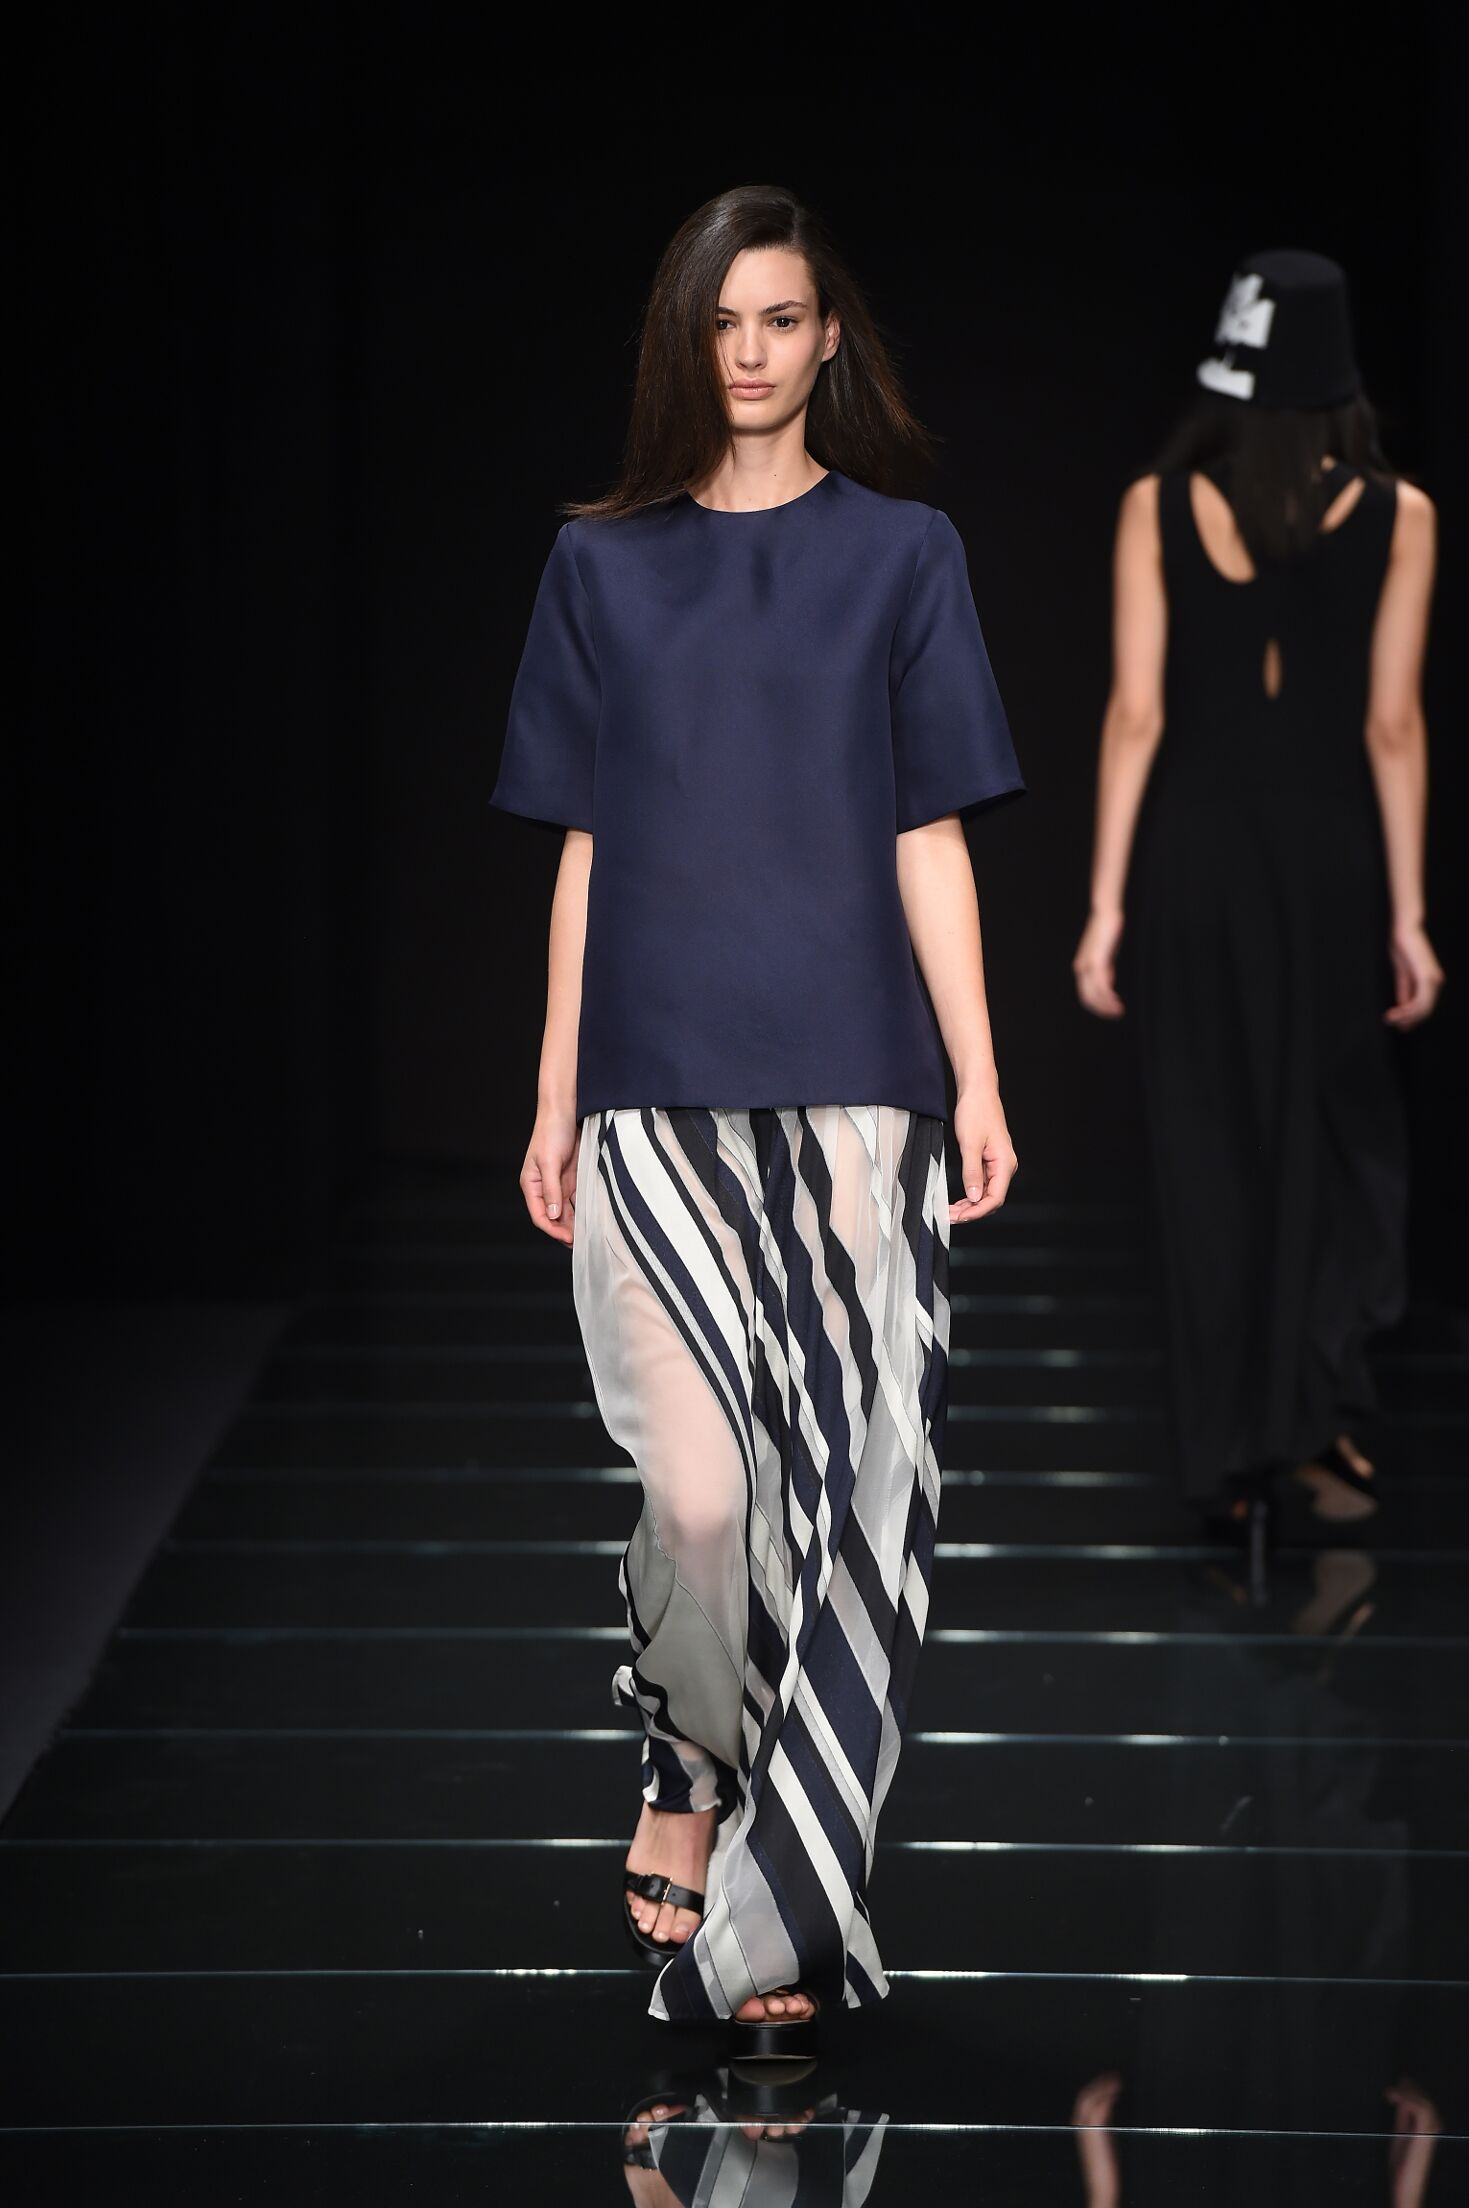 Anteprima Woman Milan Fashion Week